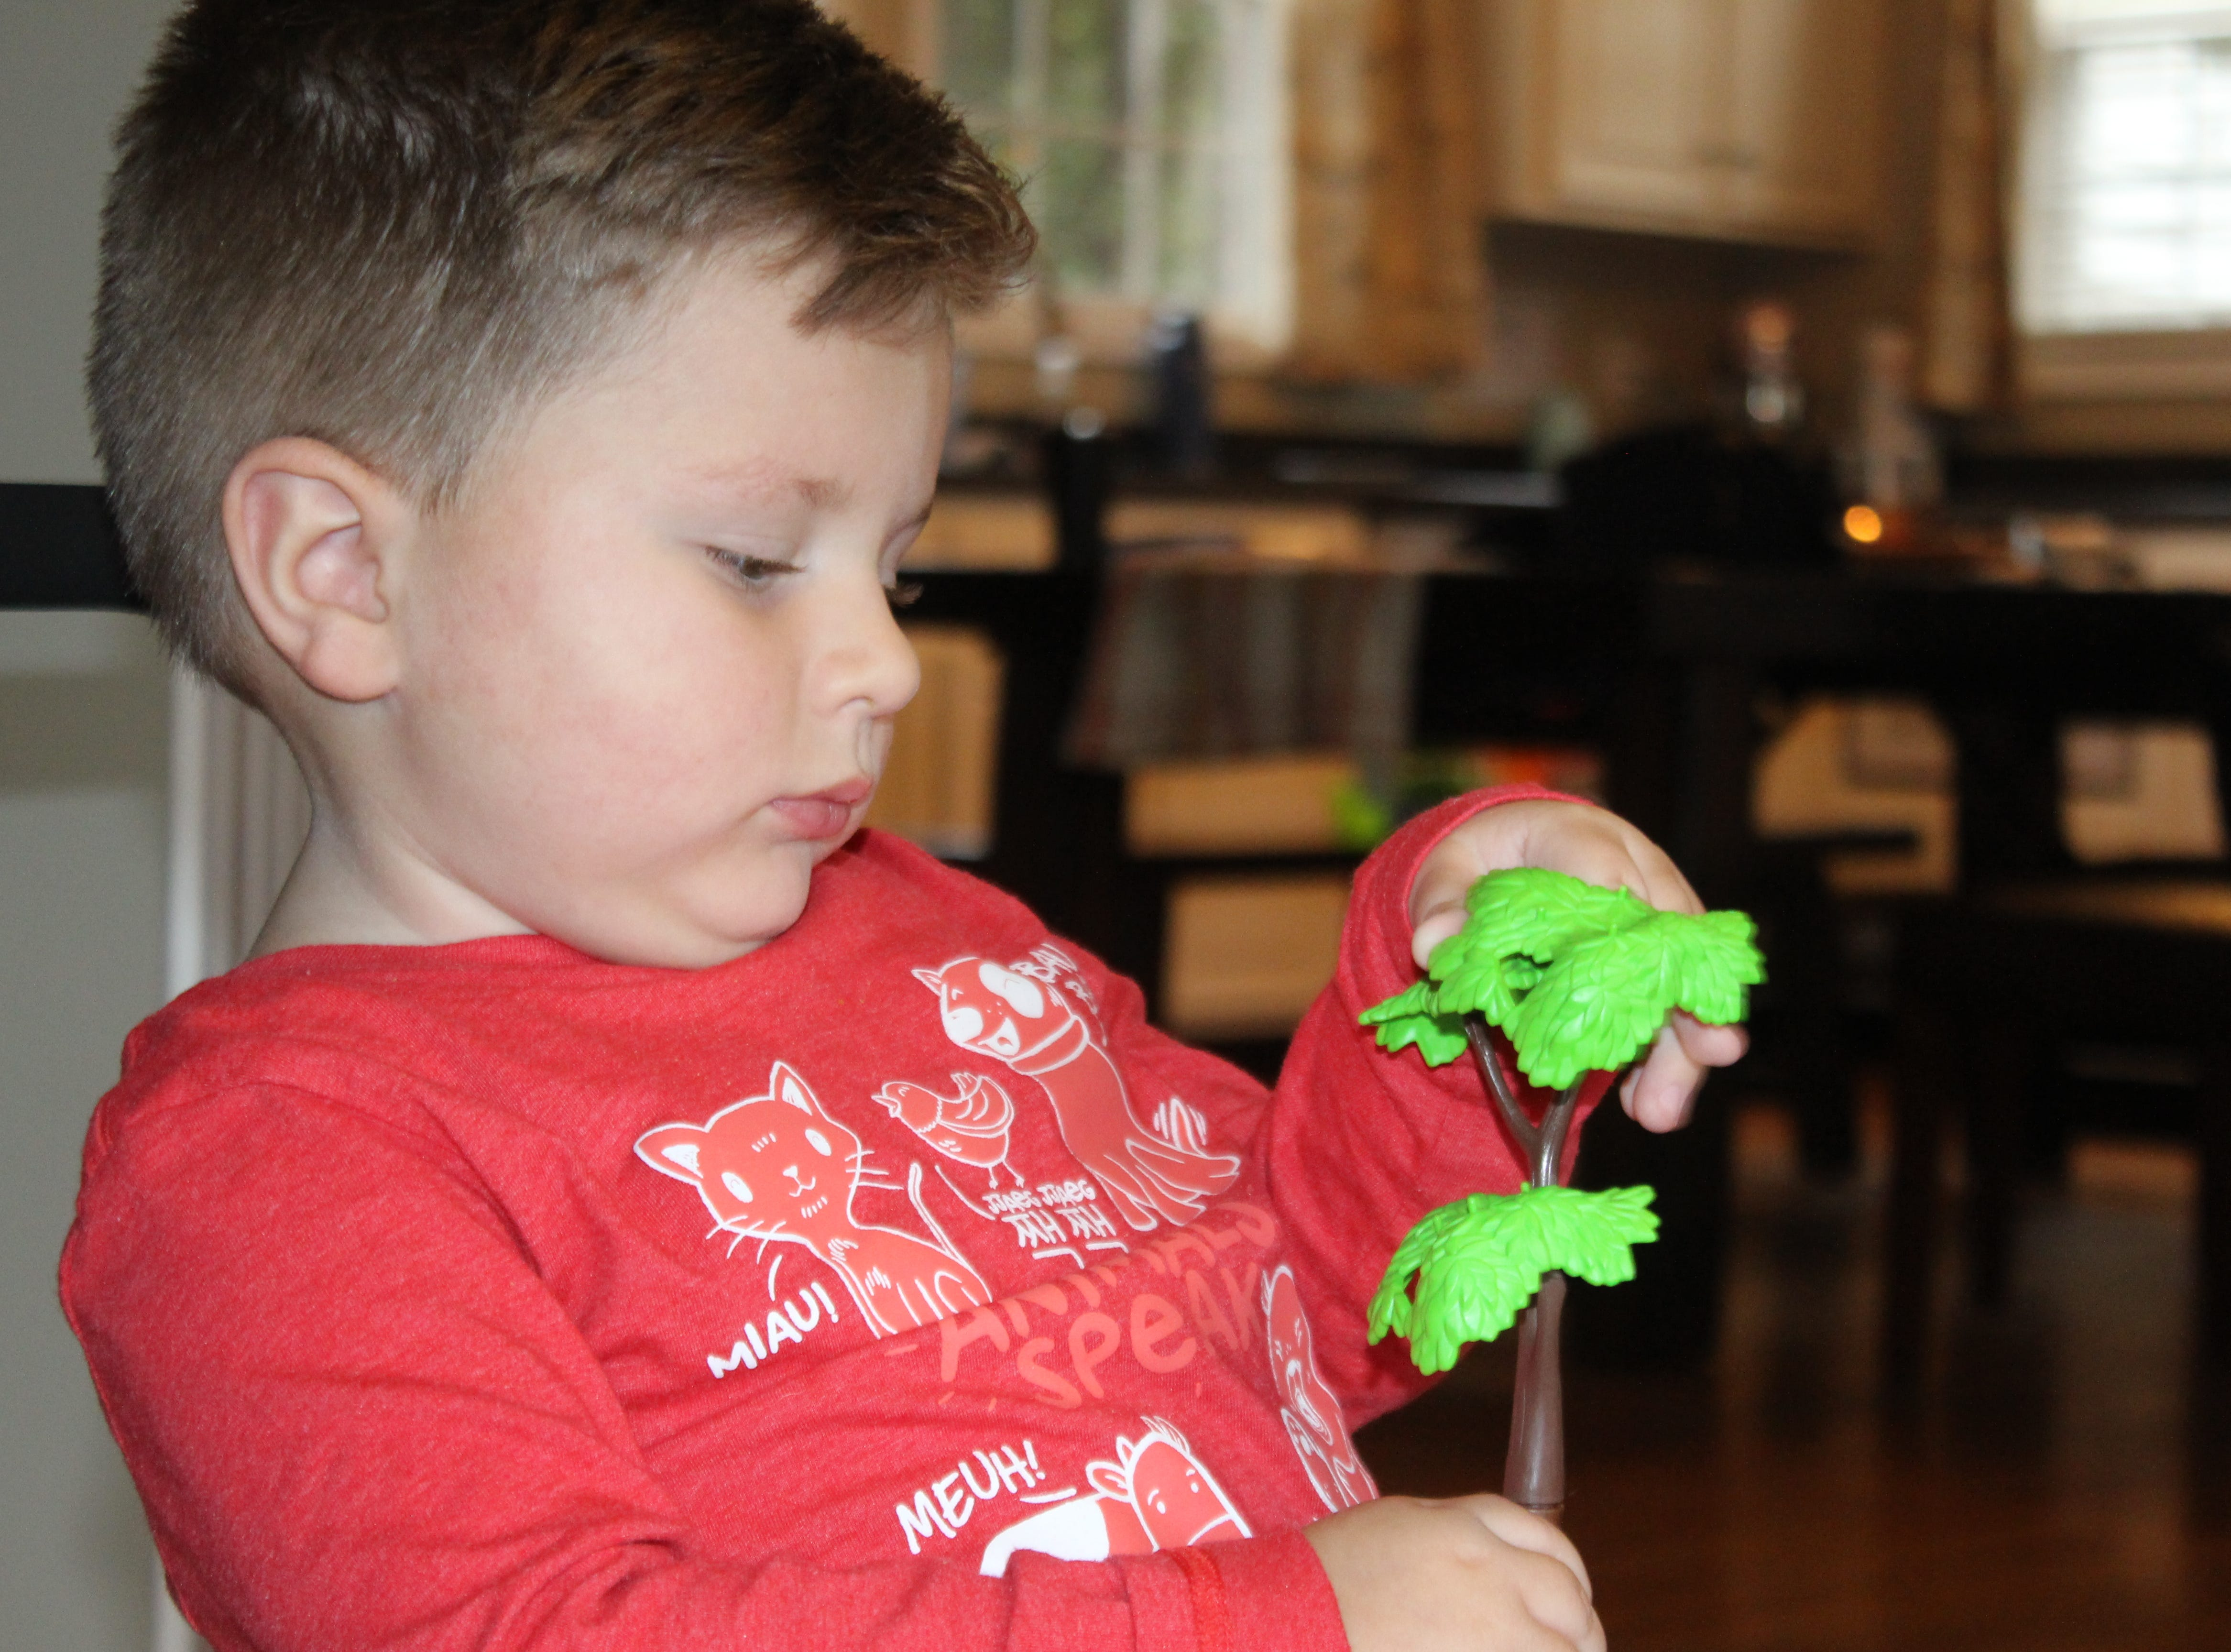 Oliver Schaper, who is receiving a first-of-its-kind treatment for spinal muscular atrophy, plays with a toy ... a simple act he would not have been able to do before his treatment.